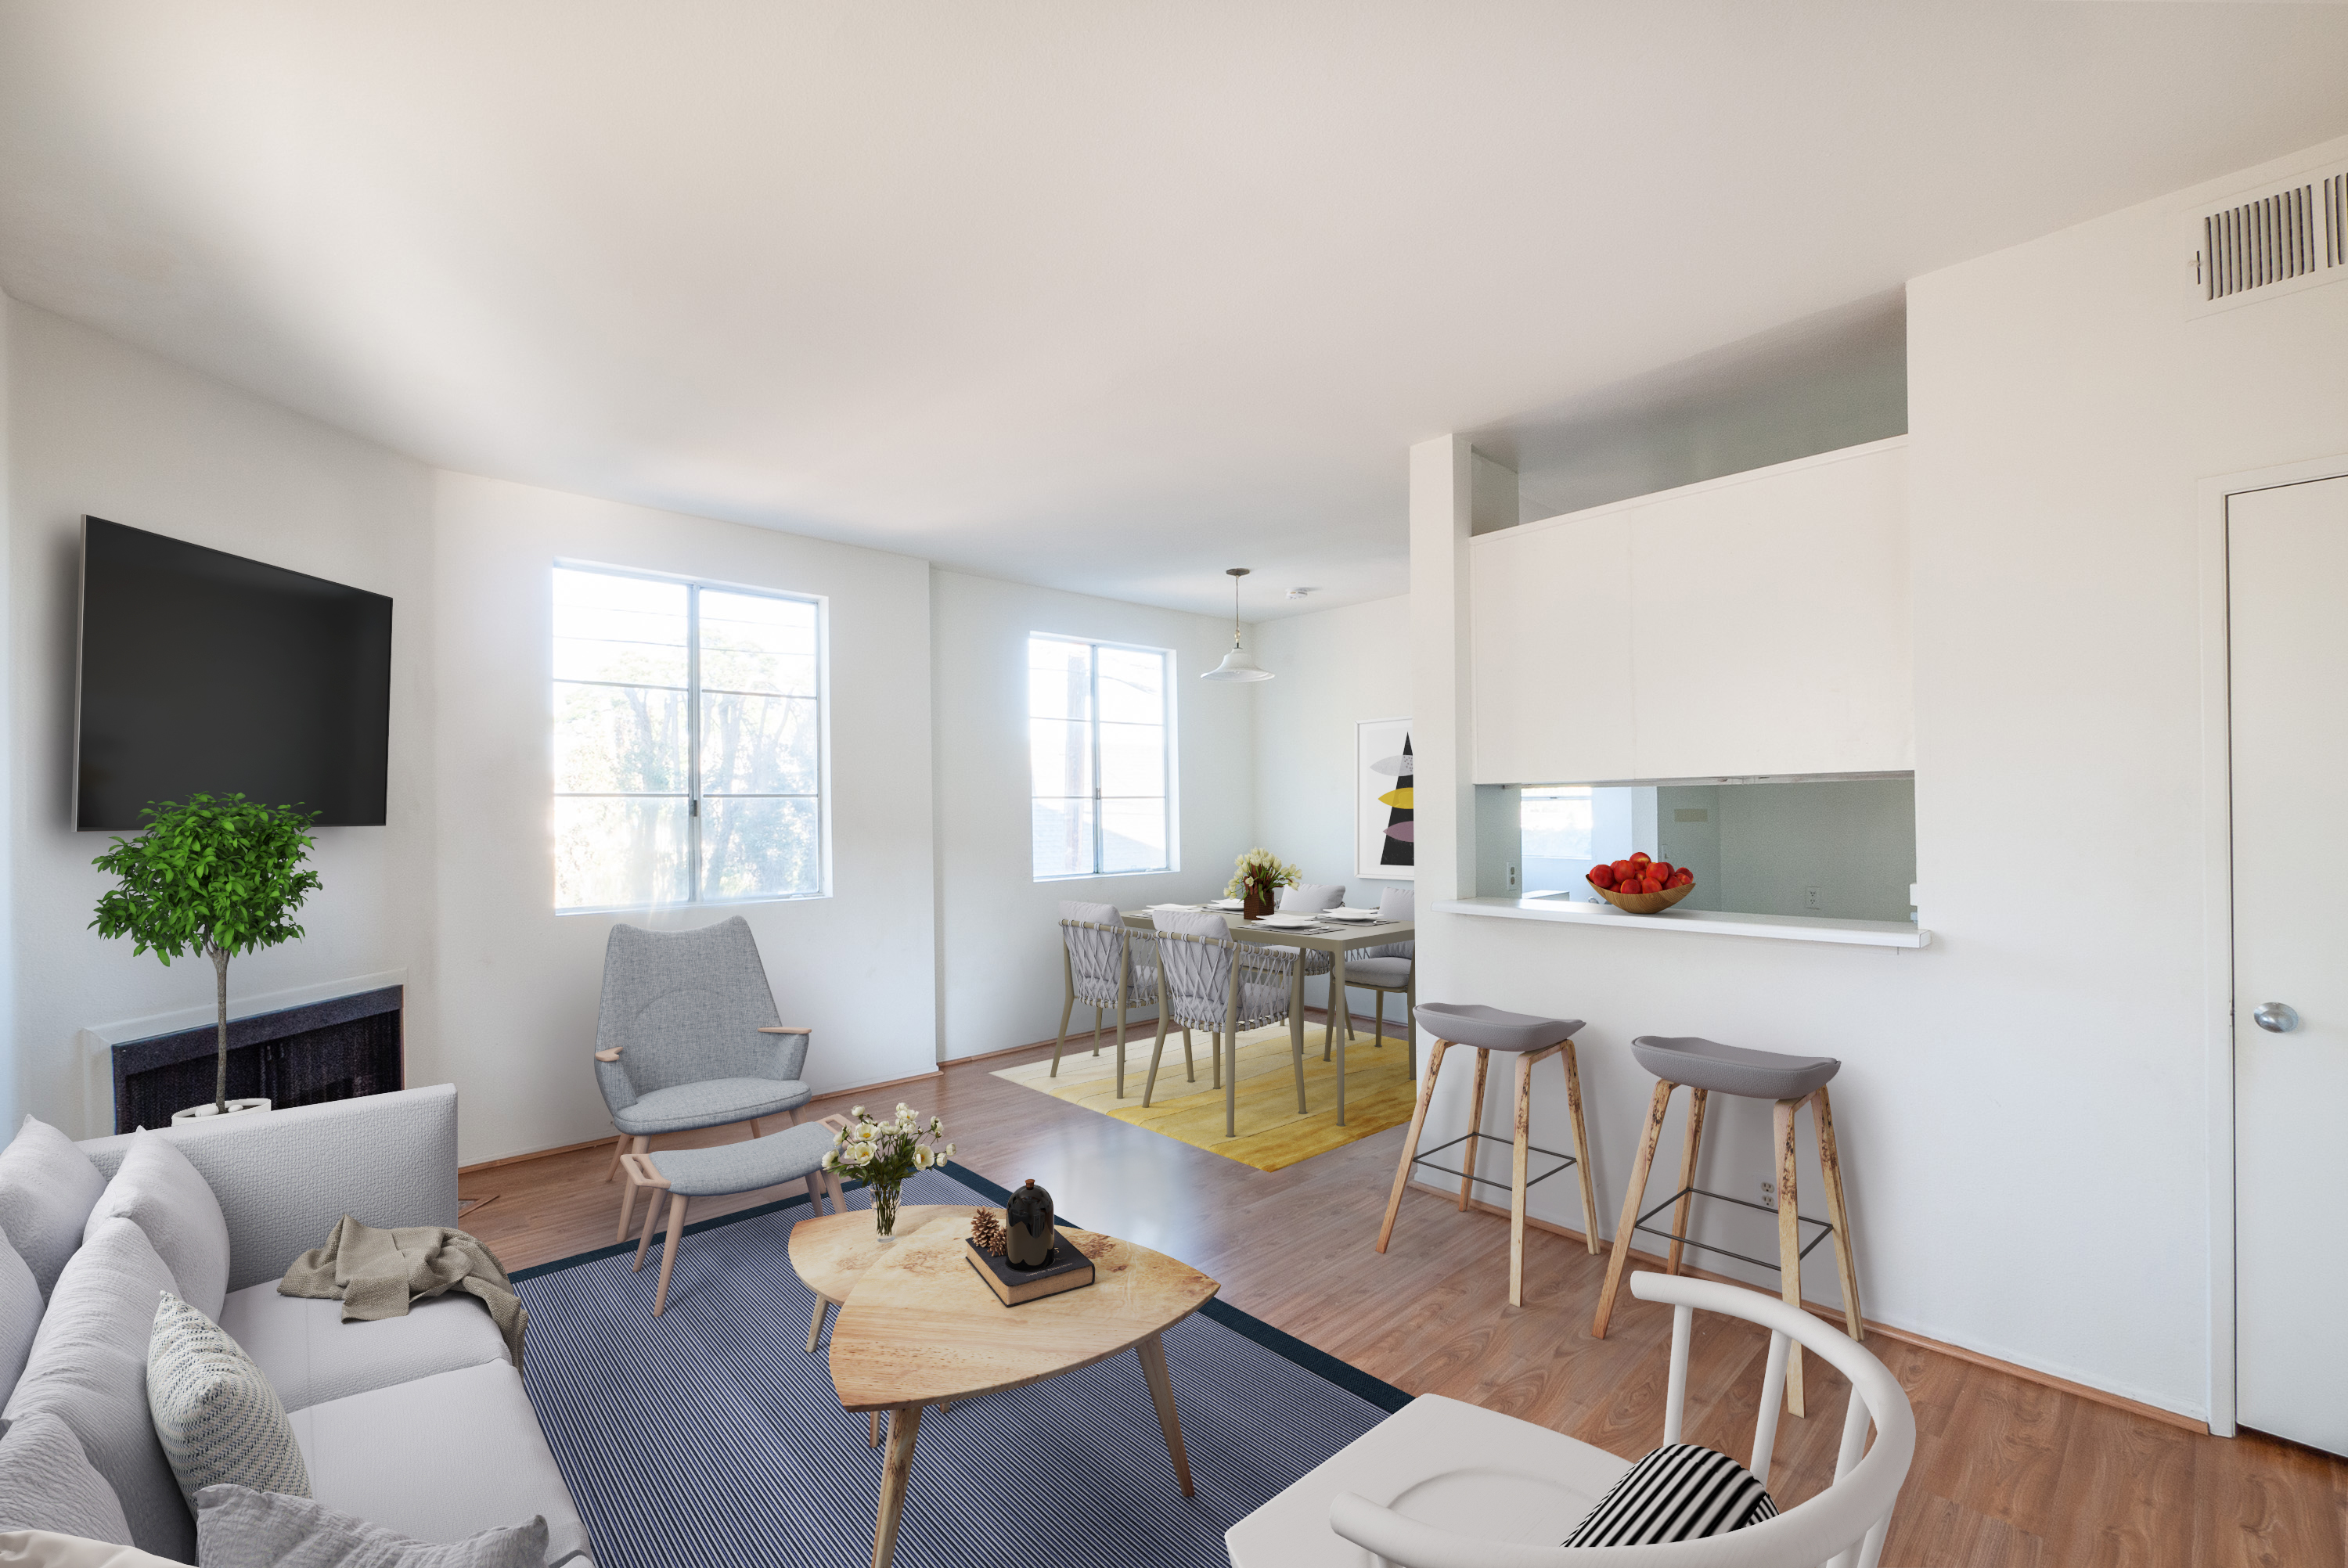 First Floor 1BD/1BA in West LA with Easy Freeway Access and Parking On Site!